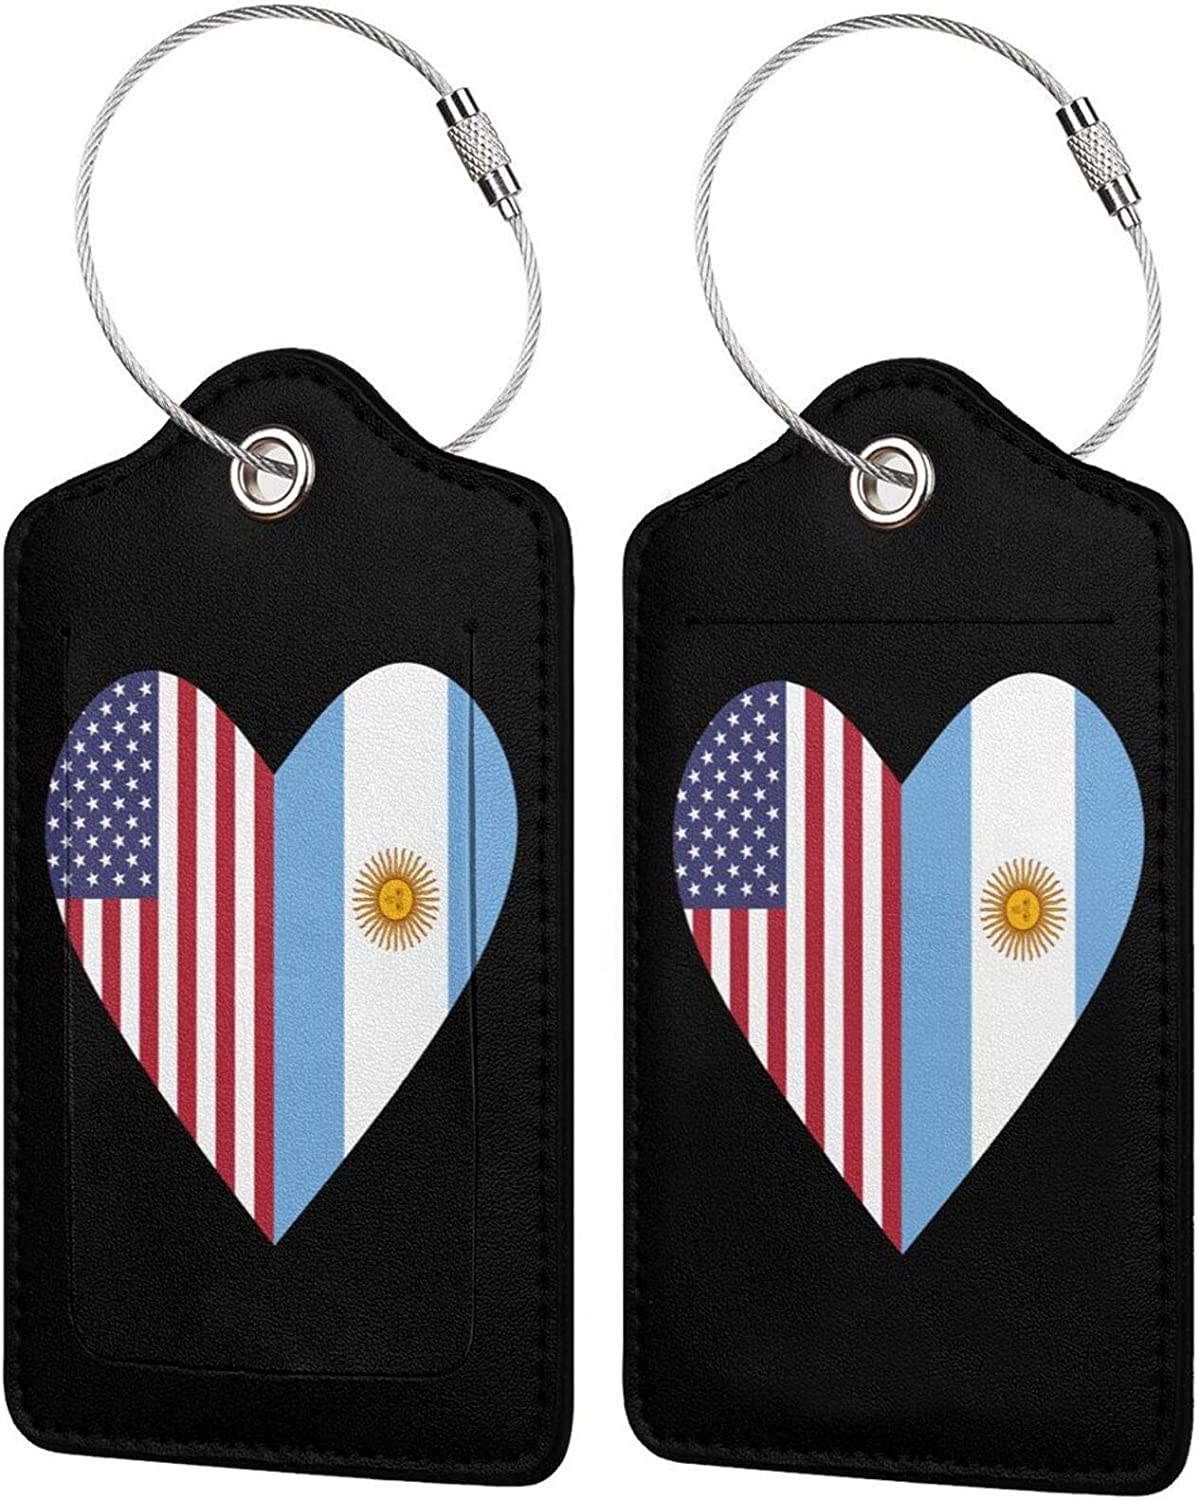 Half Argentina High material Flag USA Love Travel L PU Free shipping on posting reviews Leather Heart